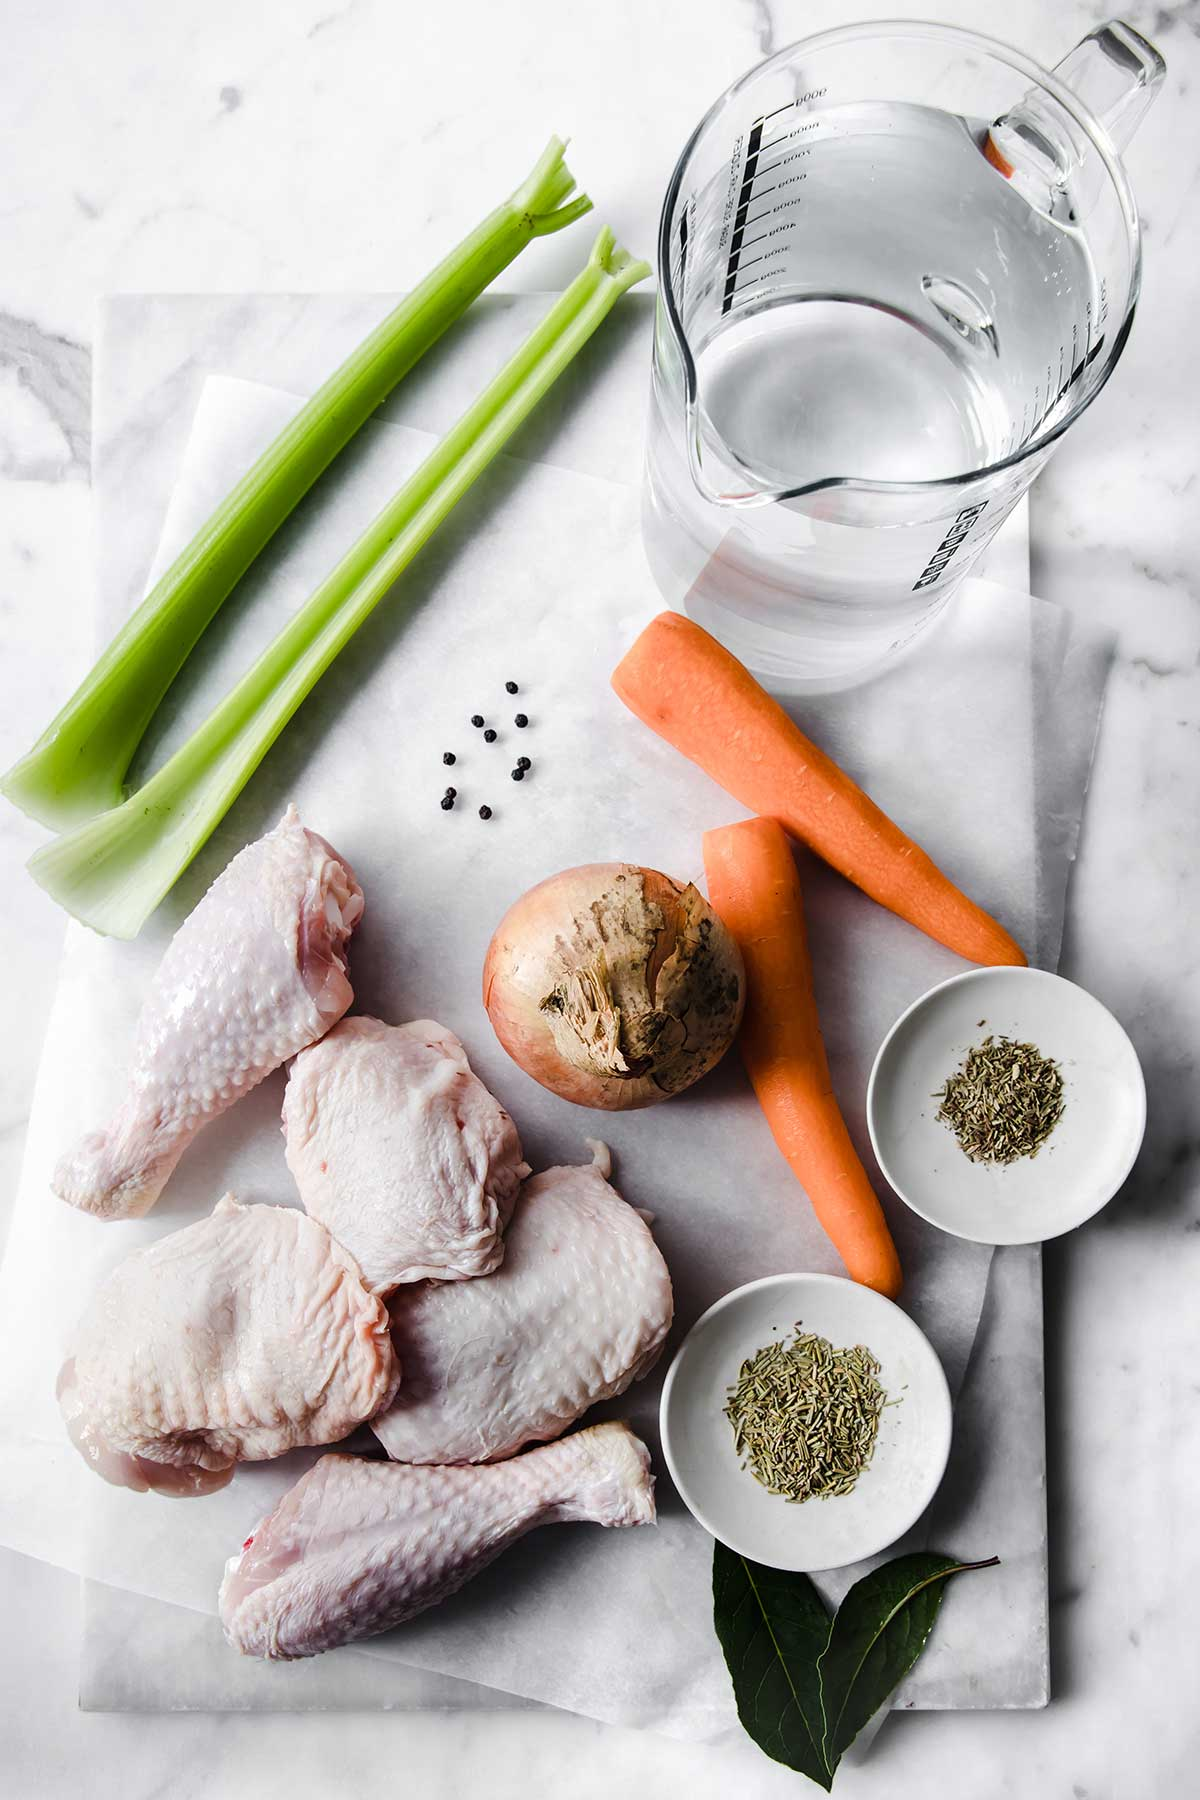 Flat lay photo of ingredients for homemade chicken broth. Chicken thighs and legs, carrot sticks, celery sticks, bay leaves, an onion and spices.